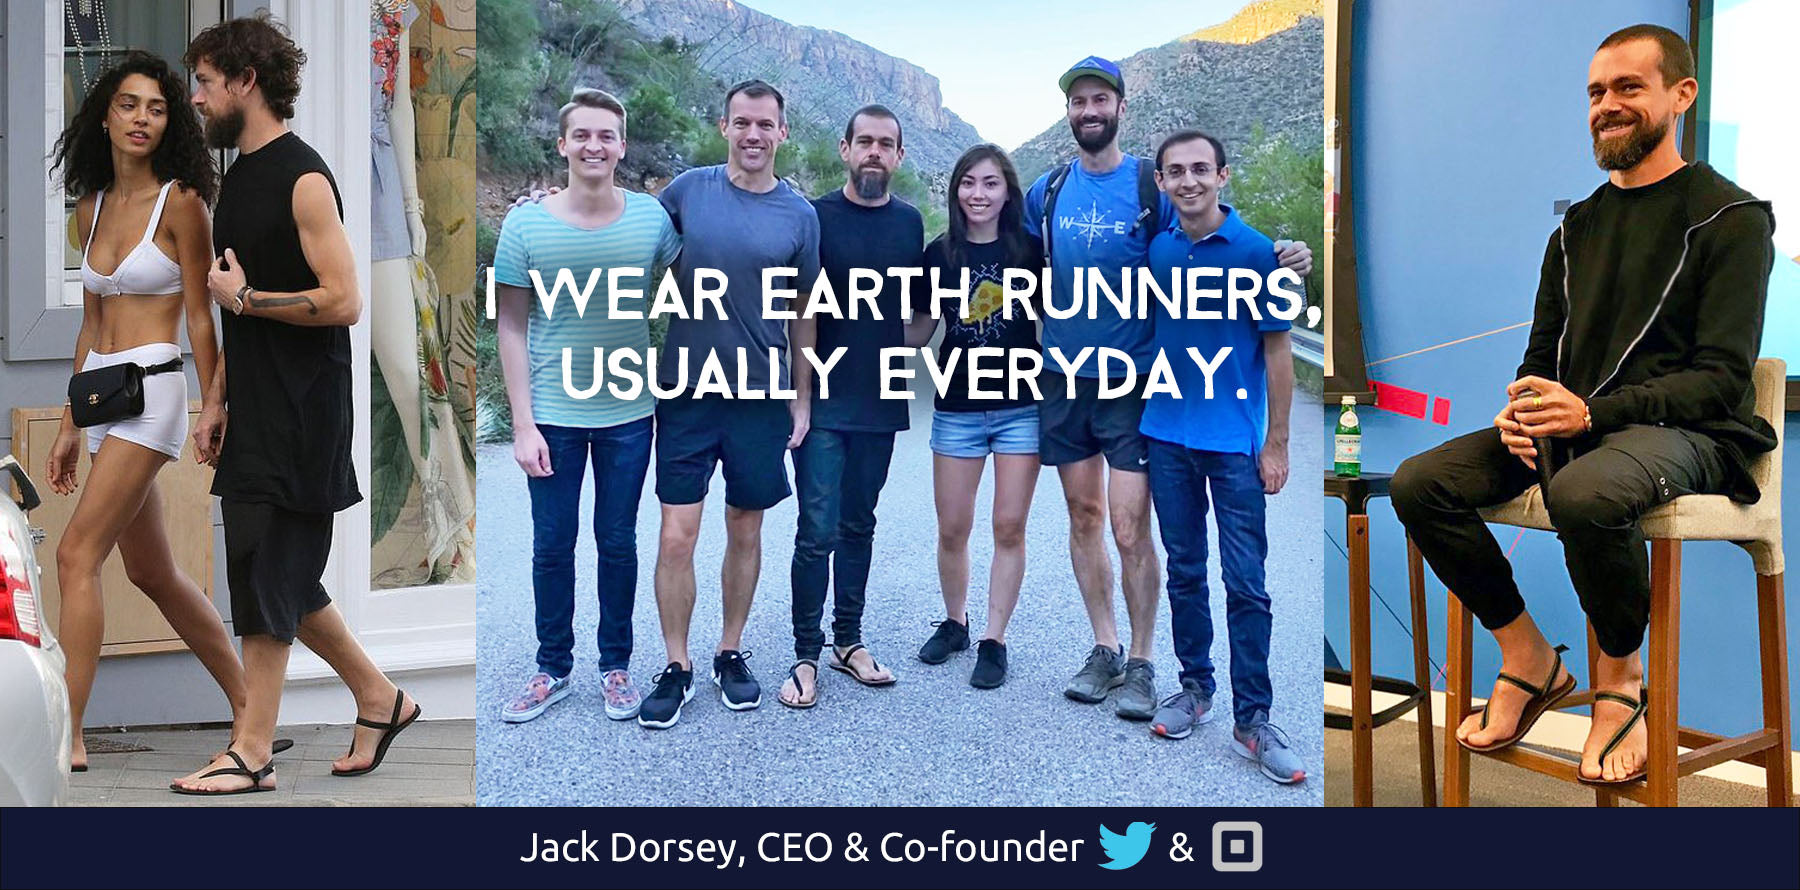 jack dorsey earth runners sandals